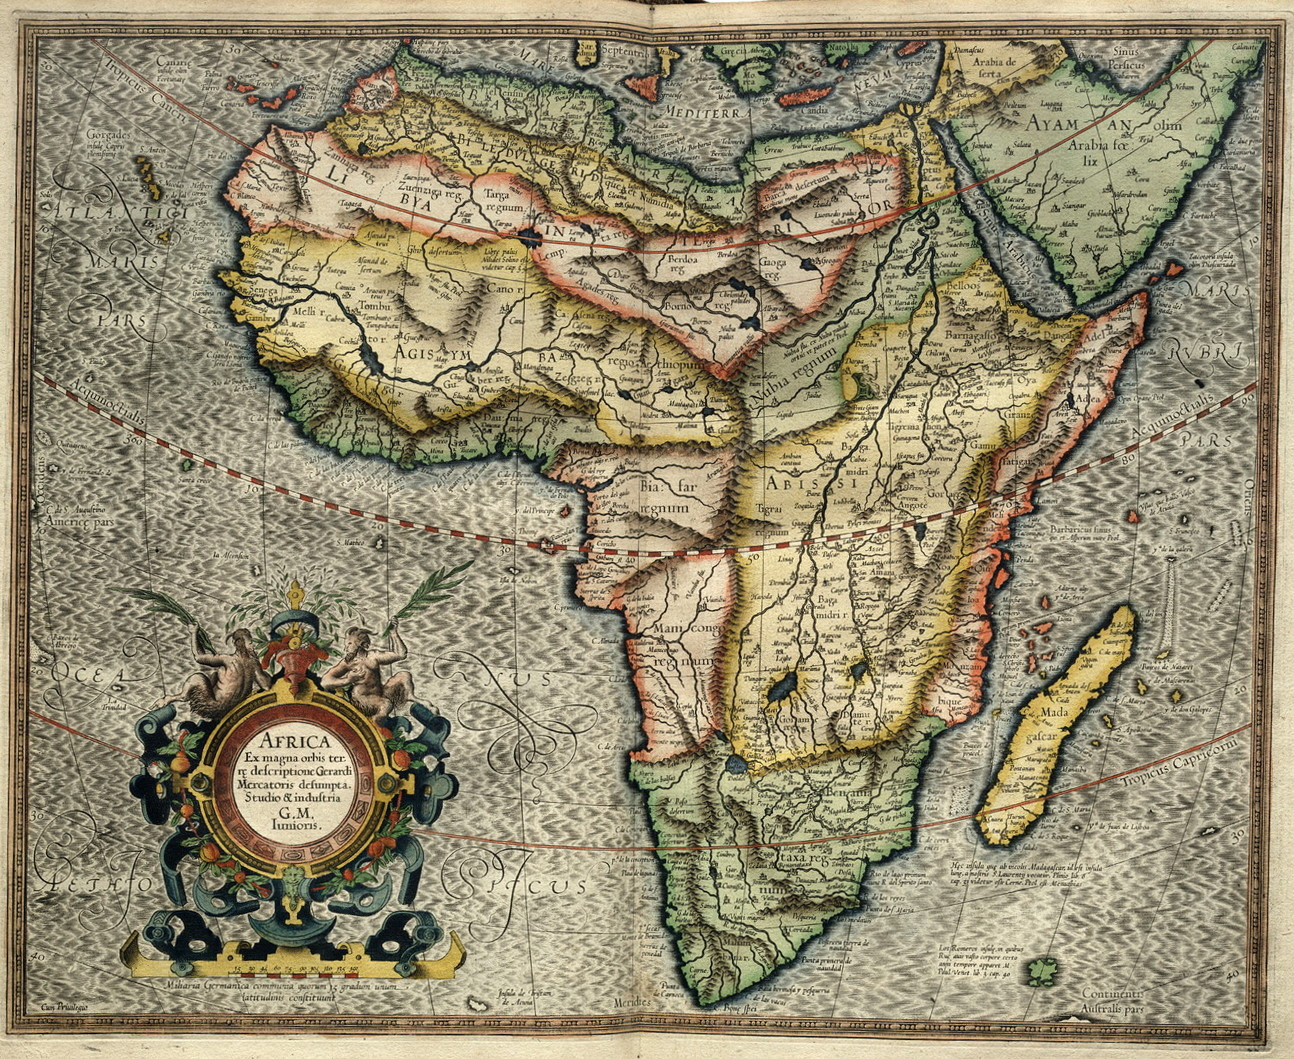 Africa in 1595